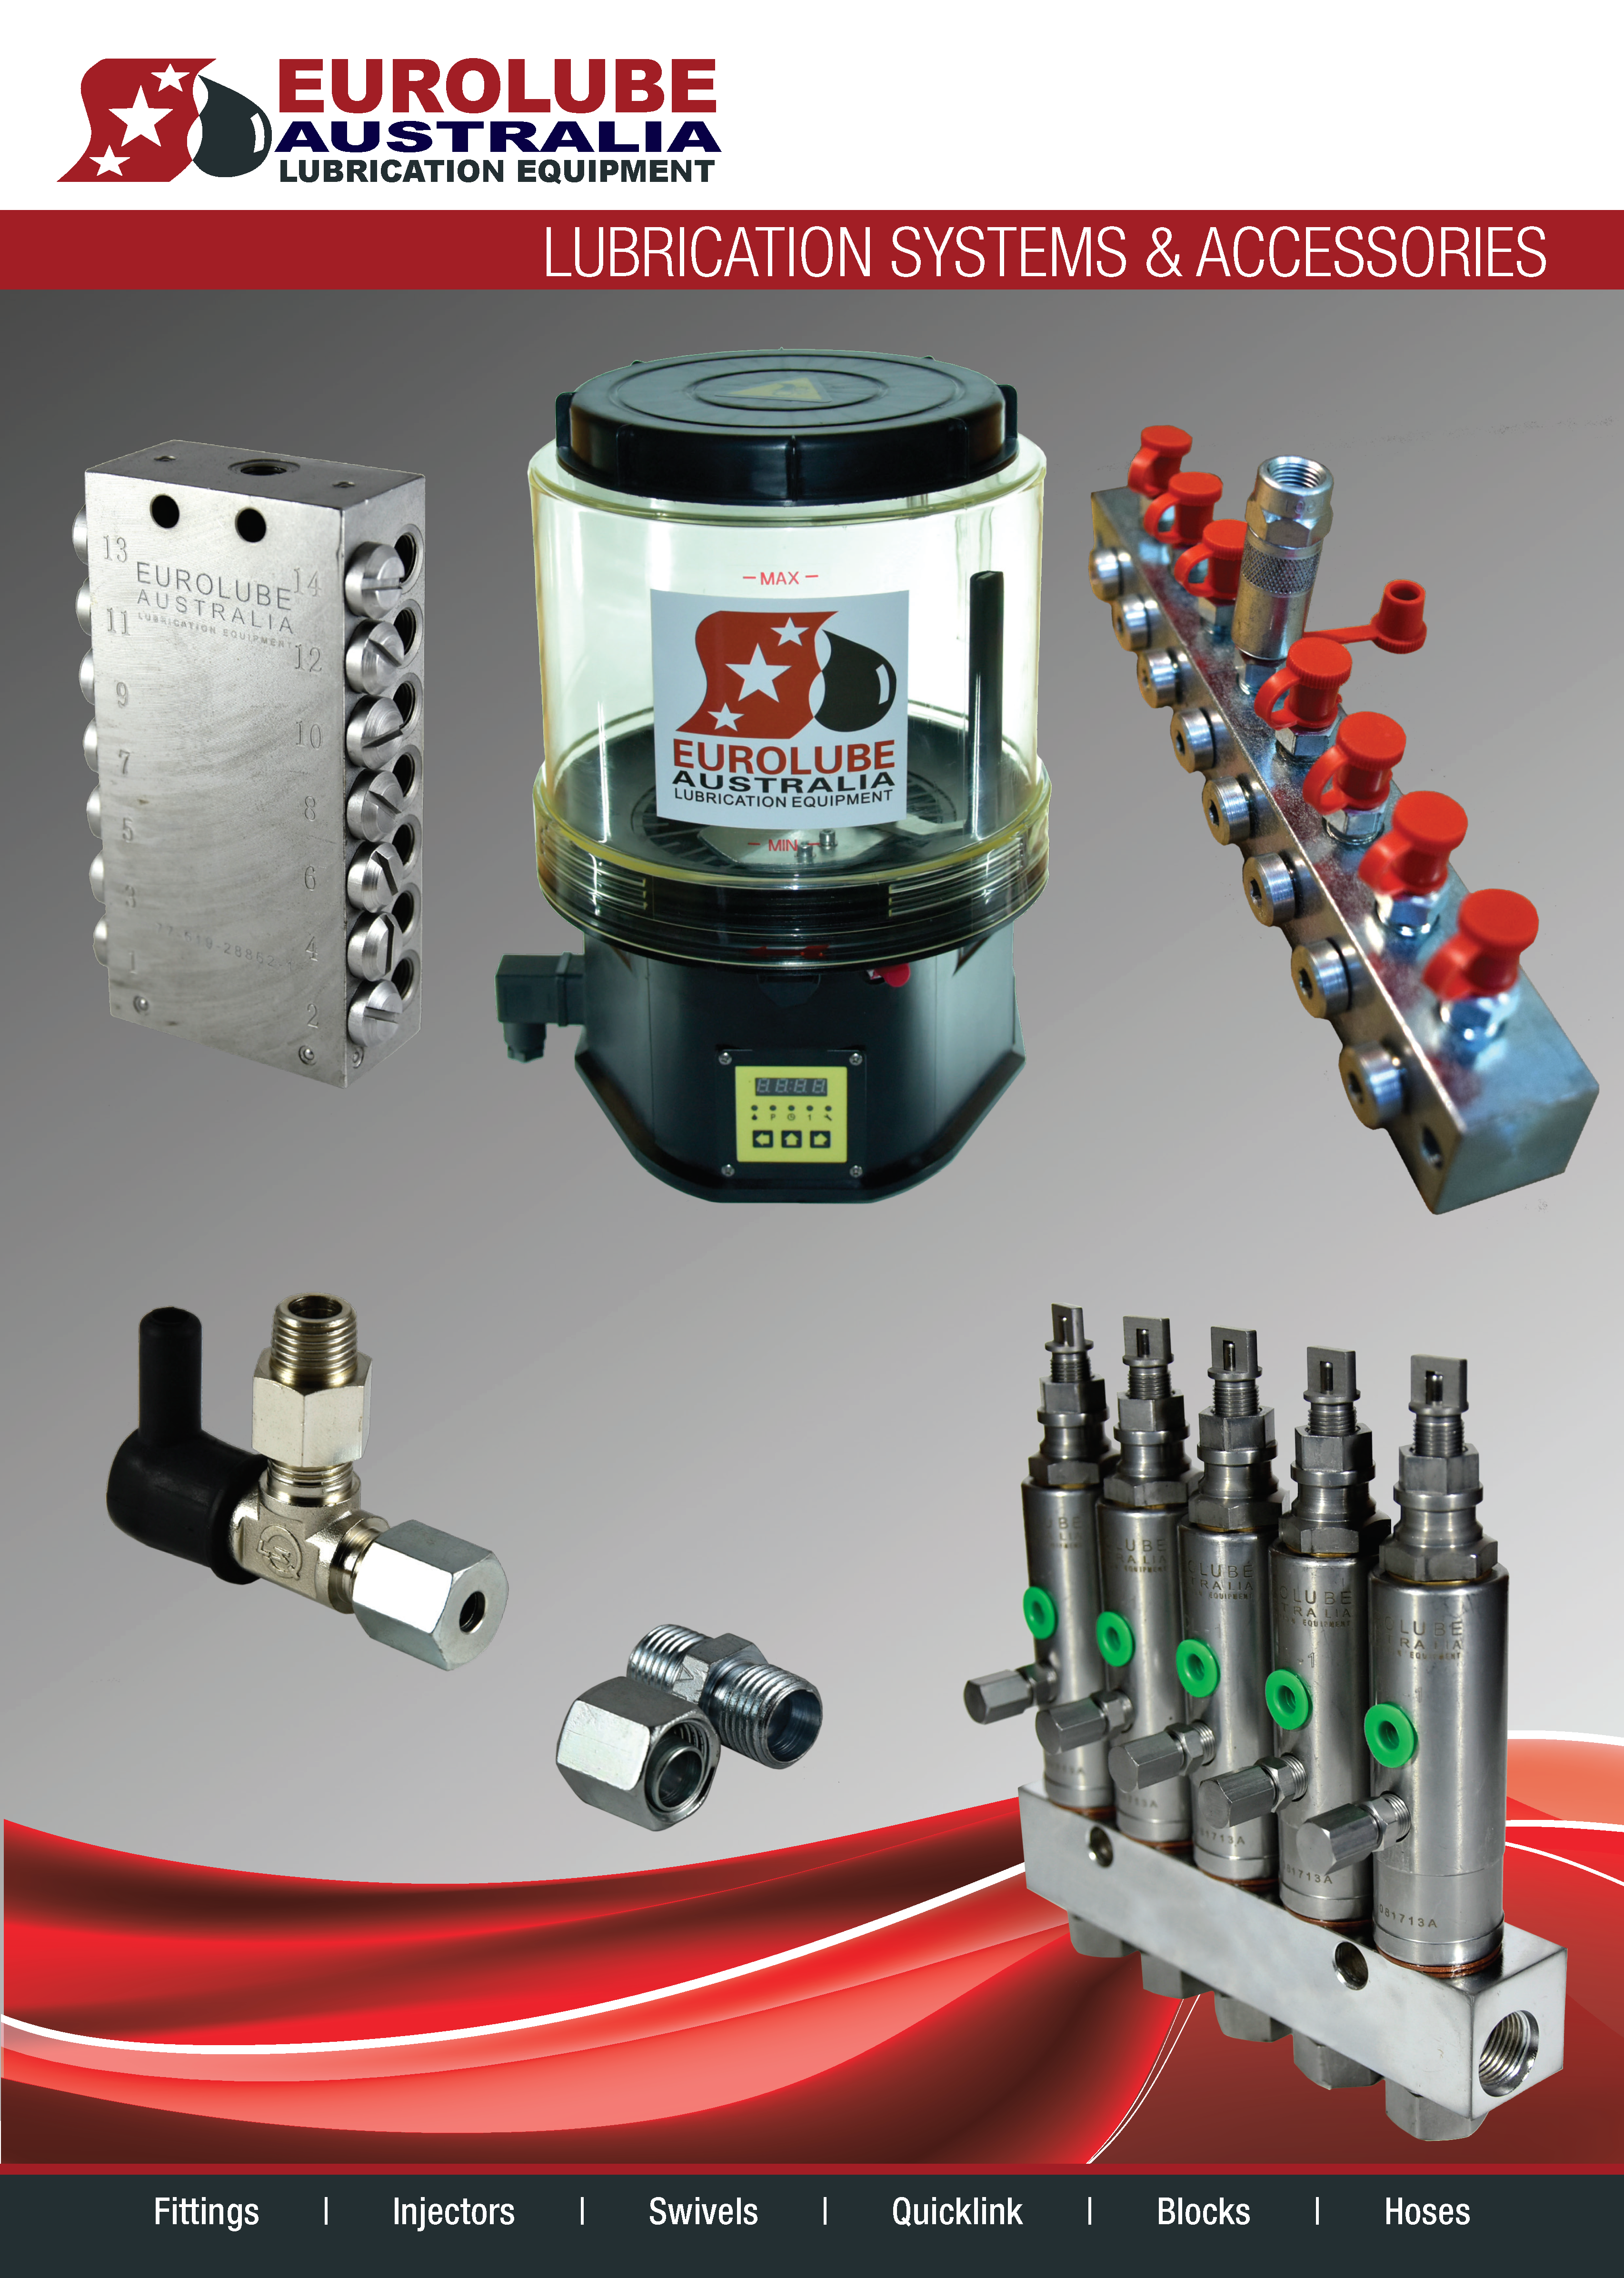 Eurolube Lubrication Systems and Accessories